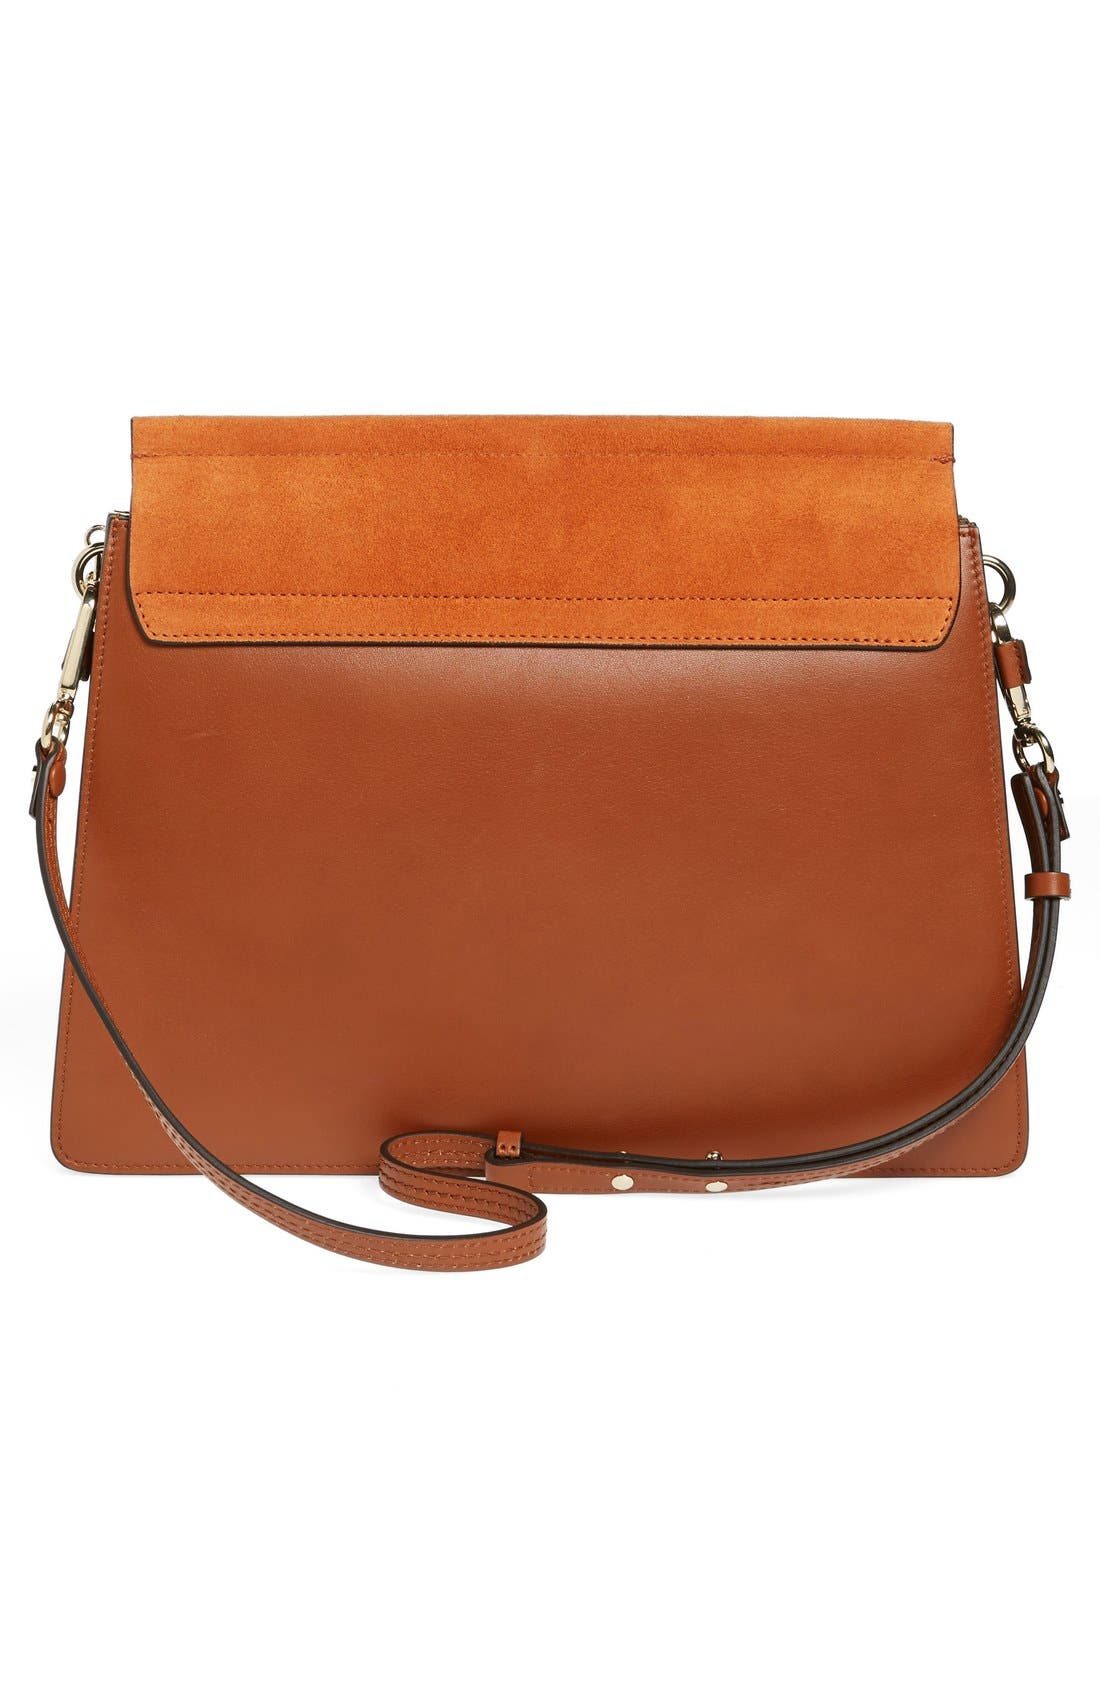 CHLOÉ, 'Faye' Leather & Suede Shoulder Bag, Alternate thumbnail 6, color, CLASSIC TOBACCO